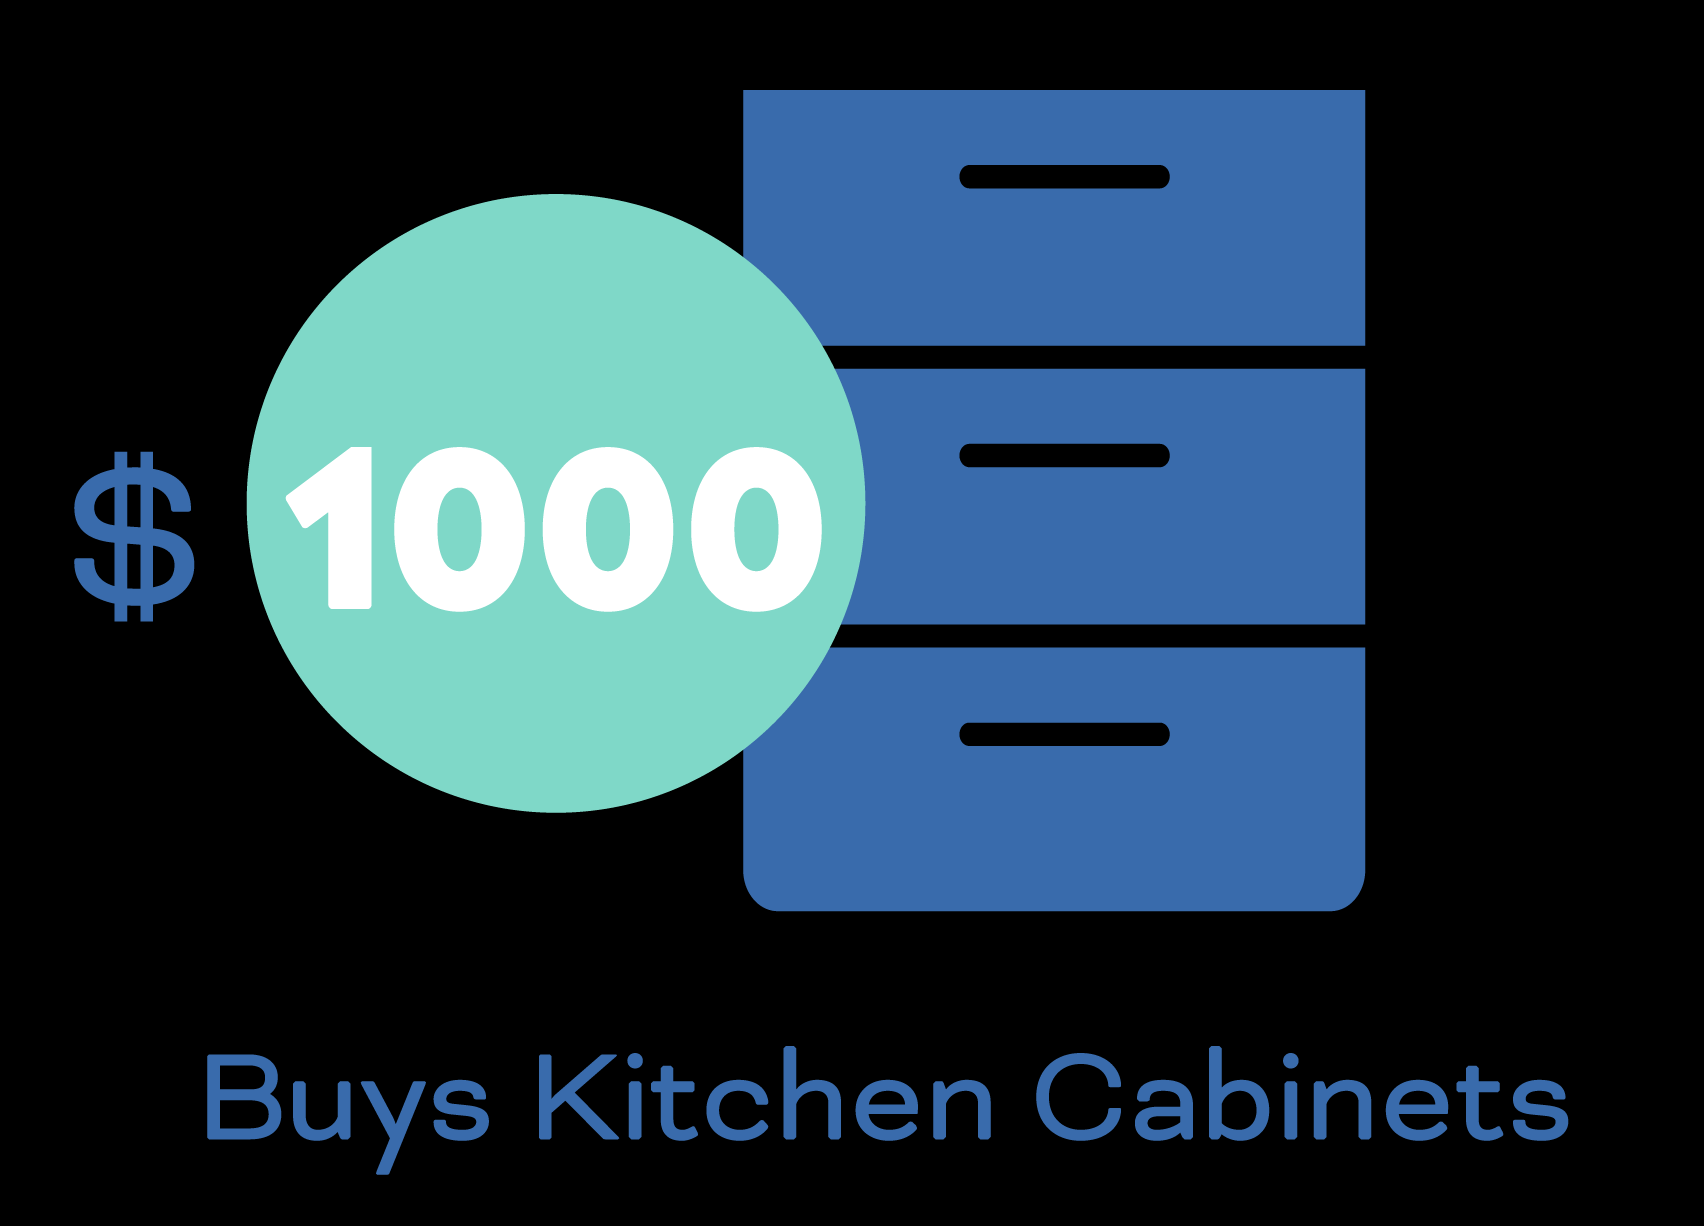 $1,000 buys a kitchen cabinet.